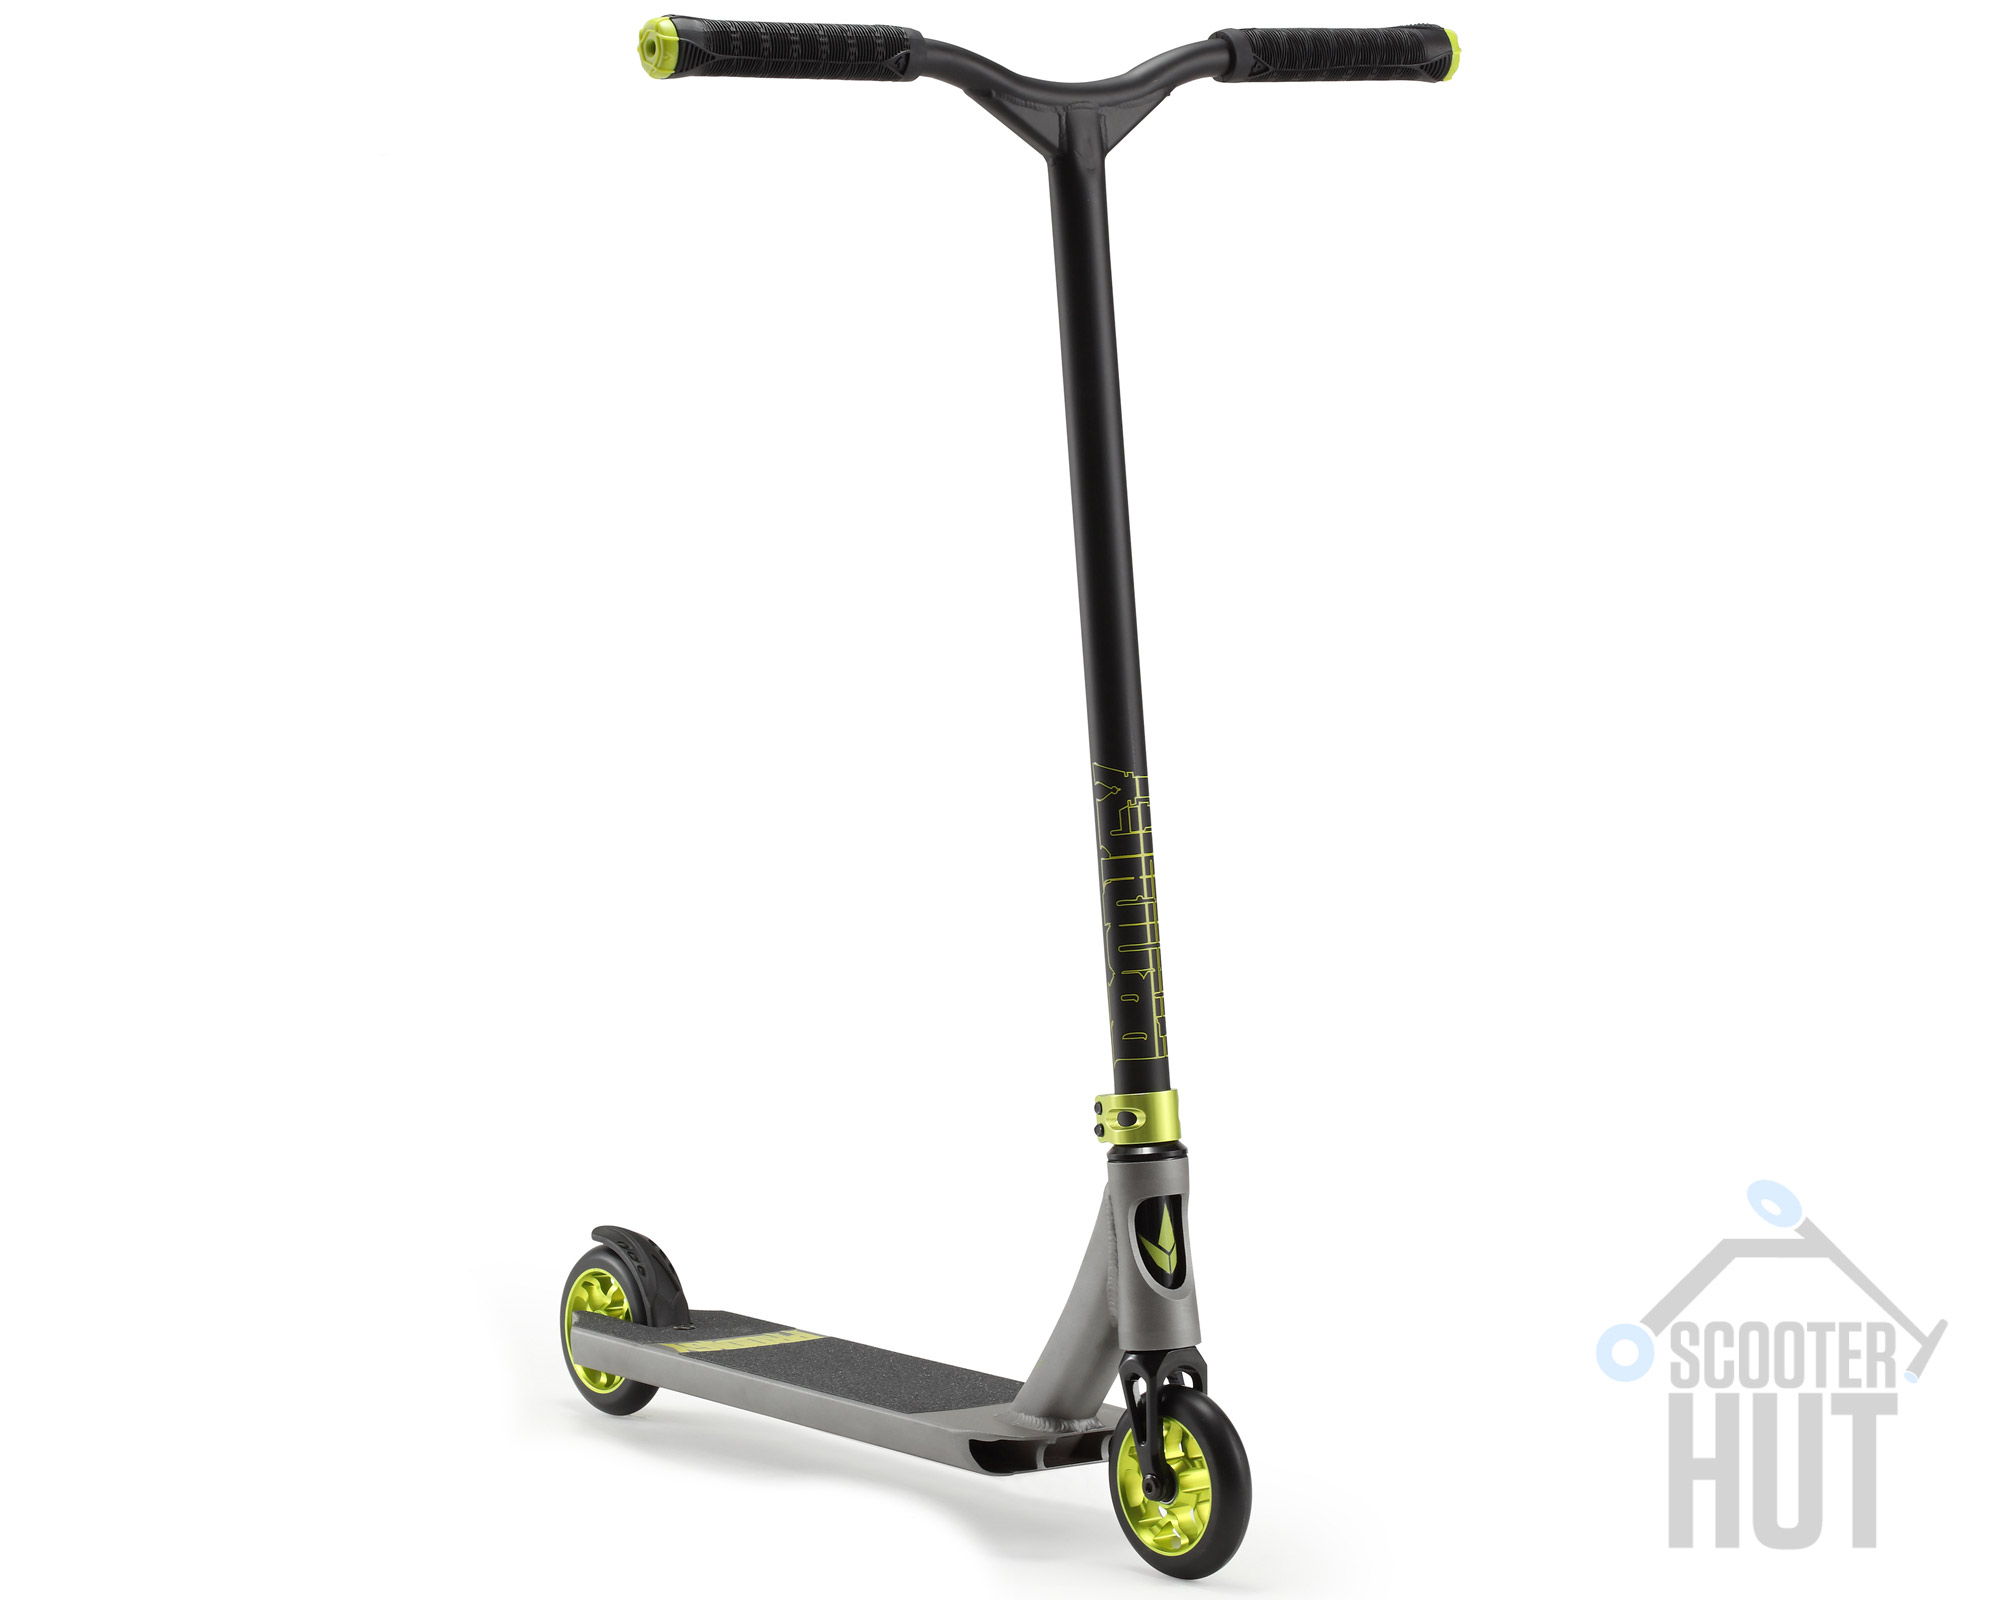 Envy Prodigy Complete Scooter 2016 Scooter HUT NEW From Scooter HUT ...